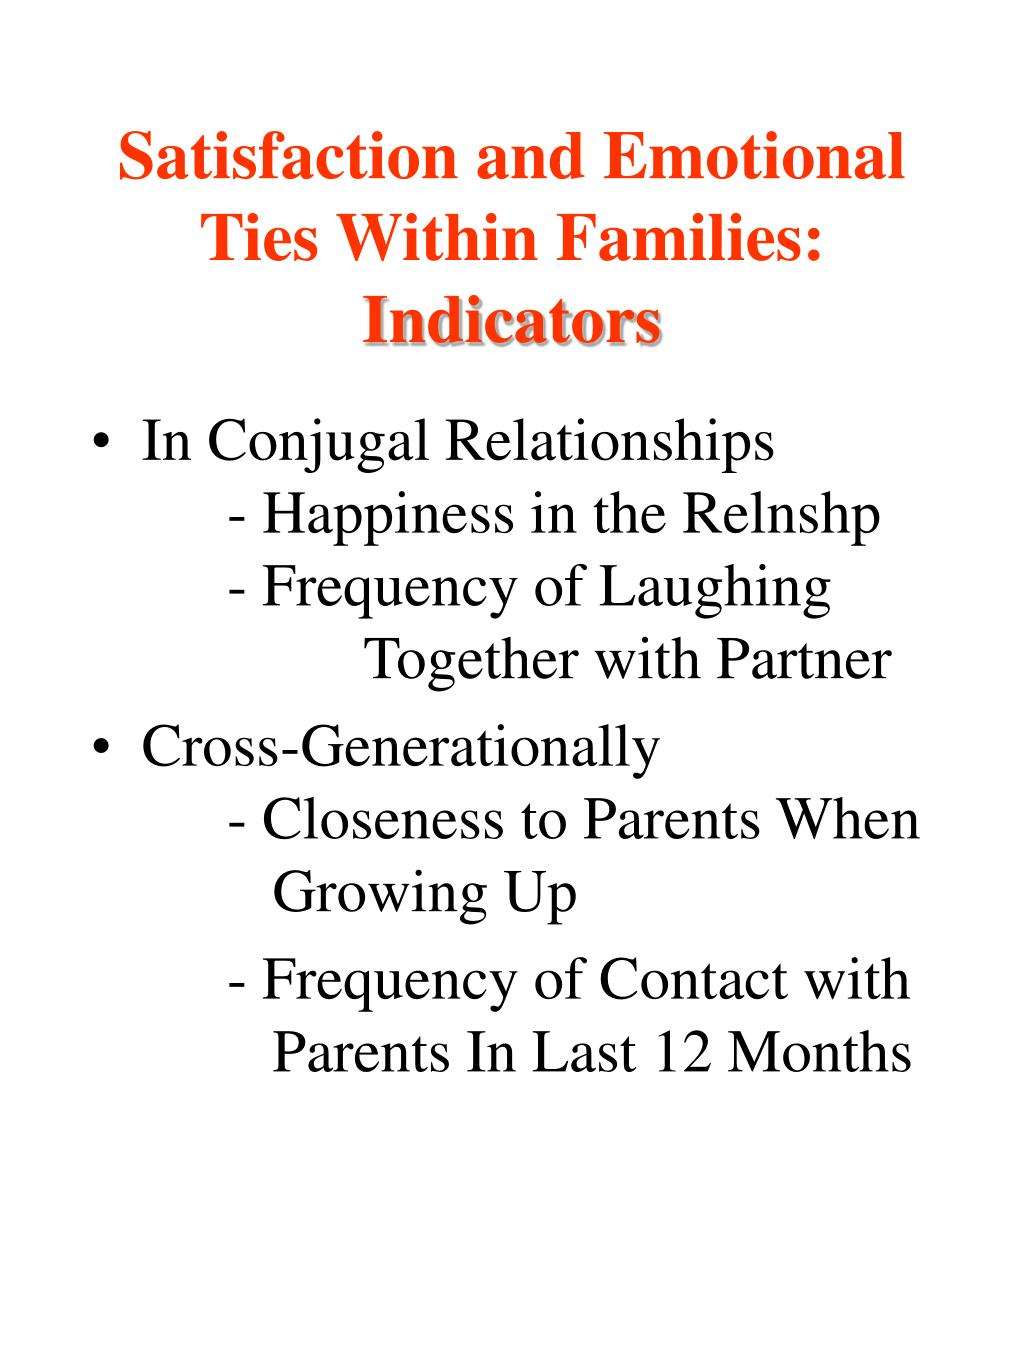 Satisfaction and Emotional Ties Within Families: